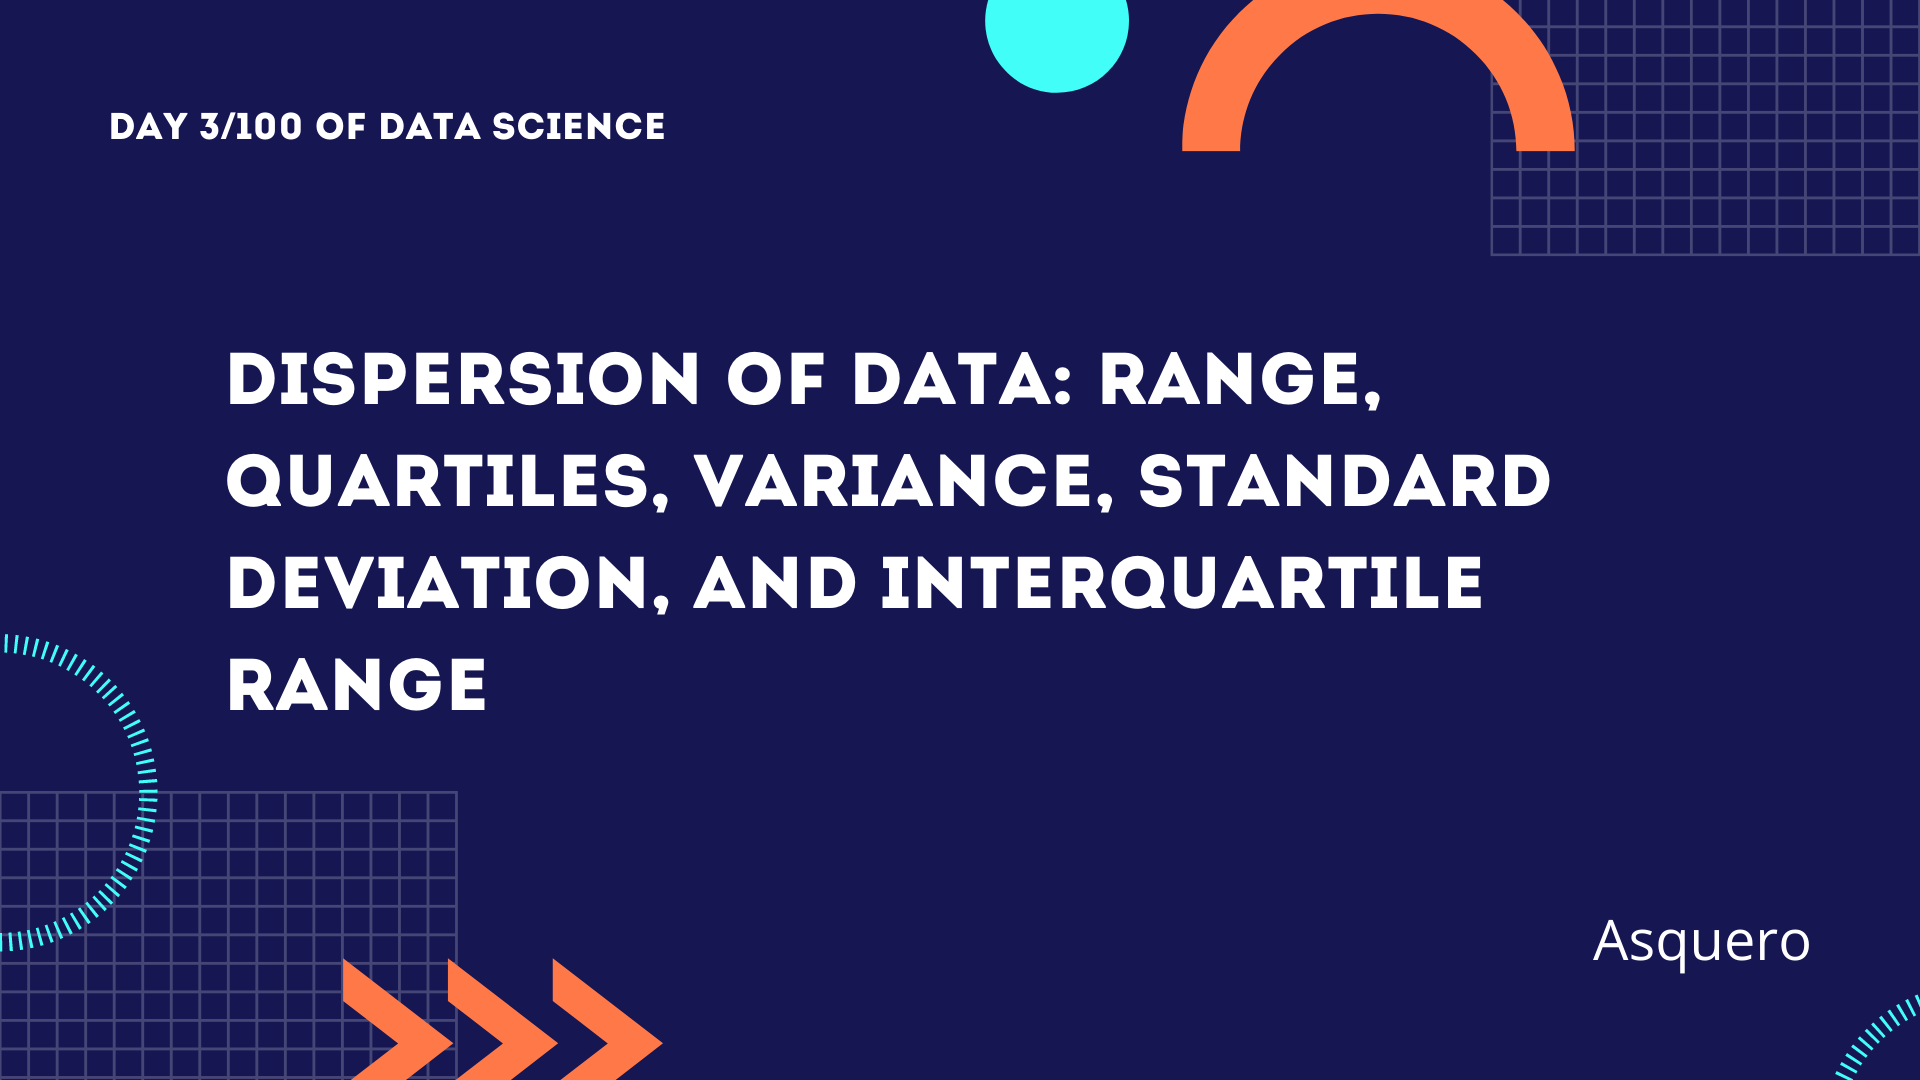 Dispersion of Data: Range, Quartiles, Variance, Standard Deviation, and Interquartile Range